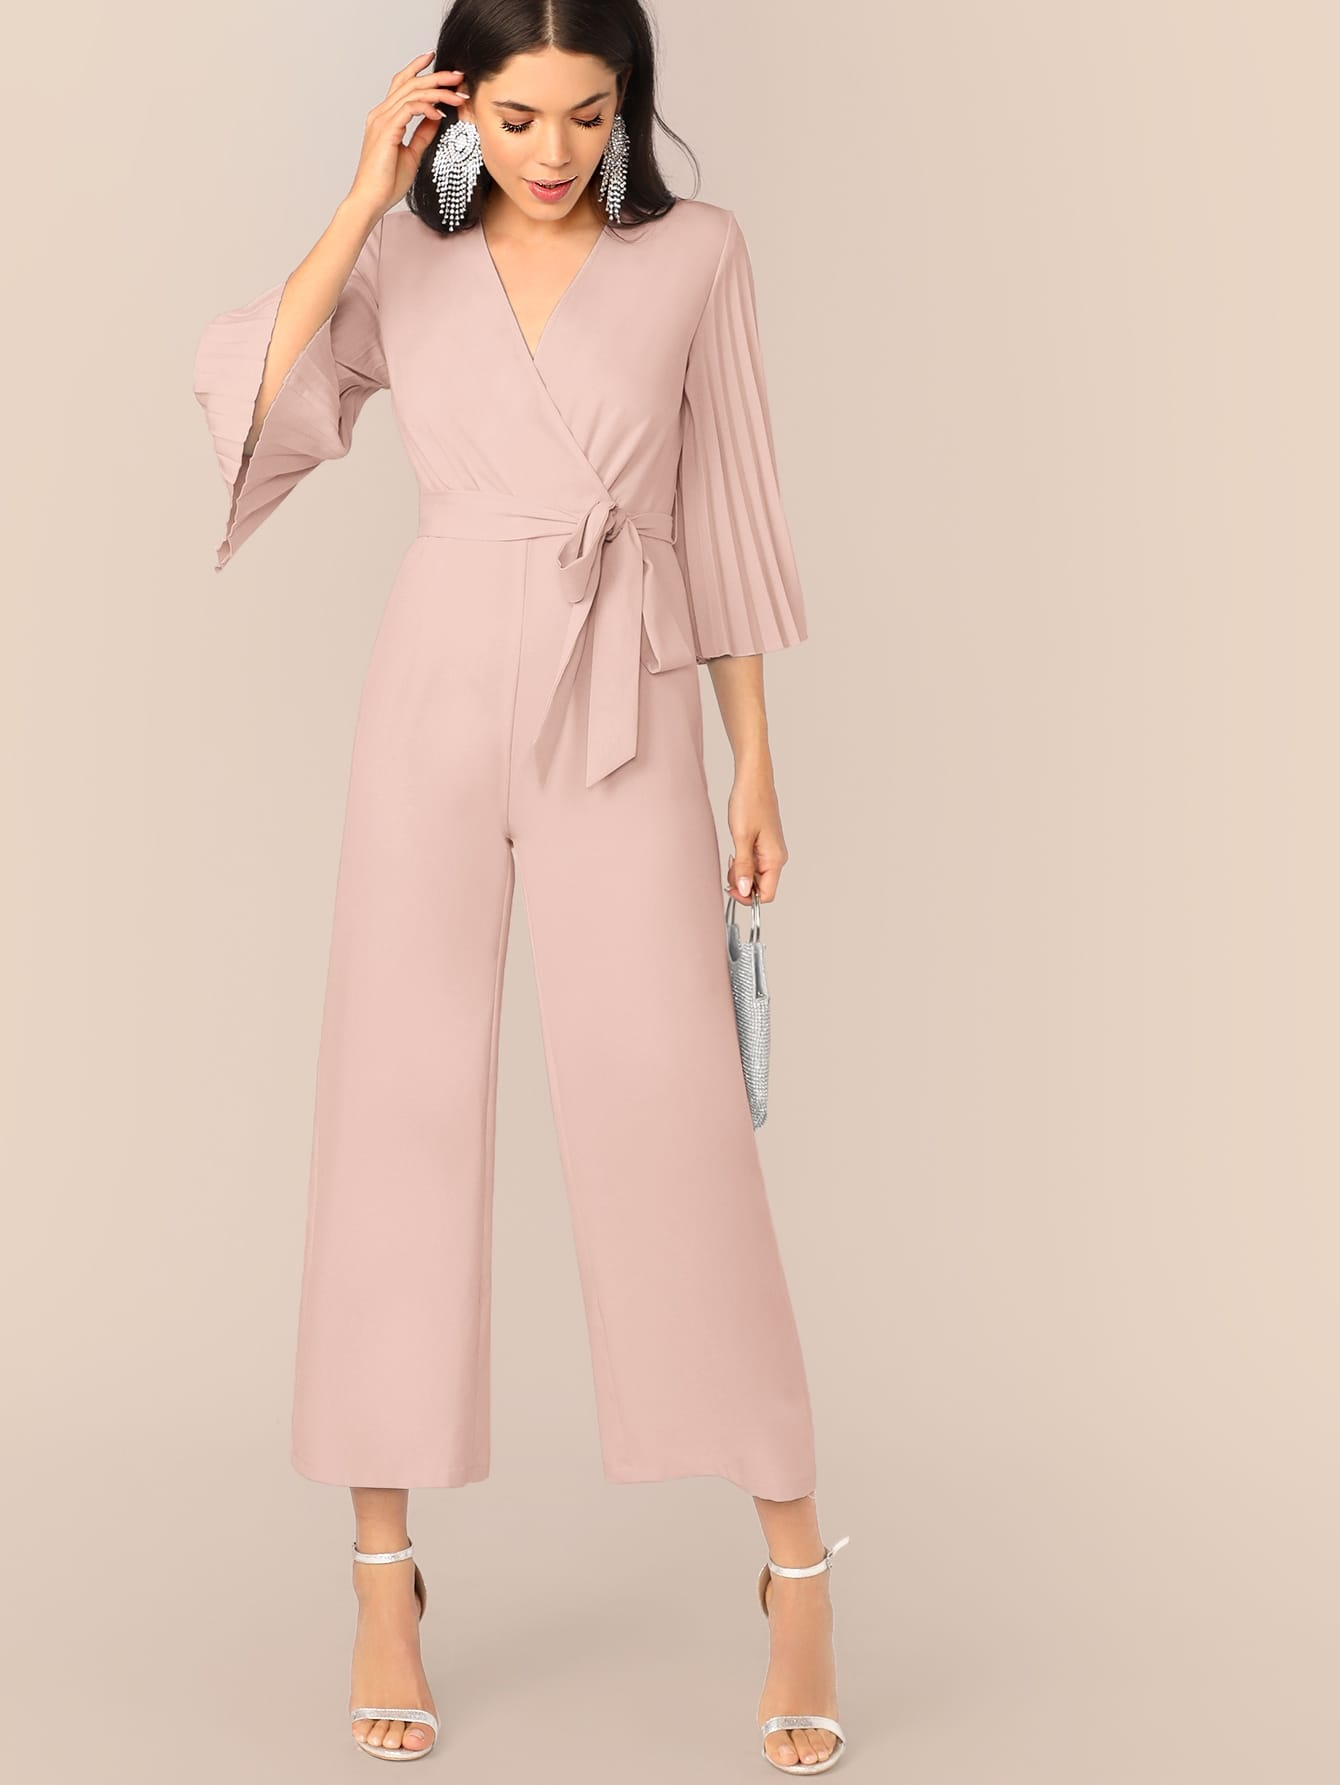 Pleated Flare Sleeve Jumpsuit-Trendy-JayBoutique-Pink-XS-Trendy-JayBoutique